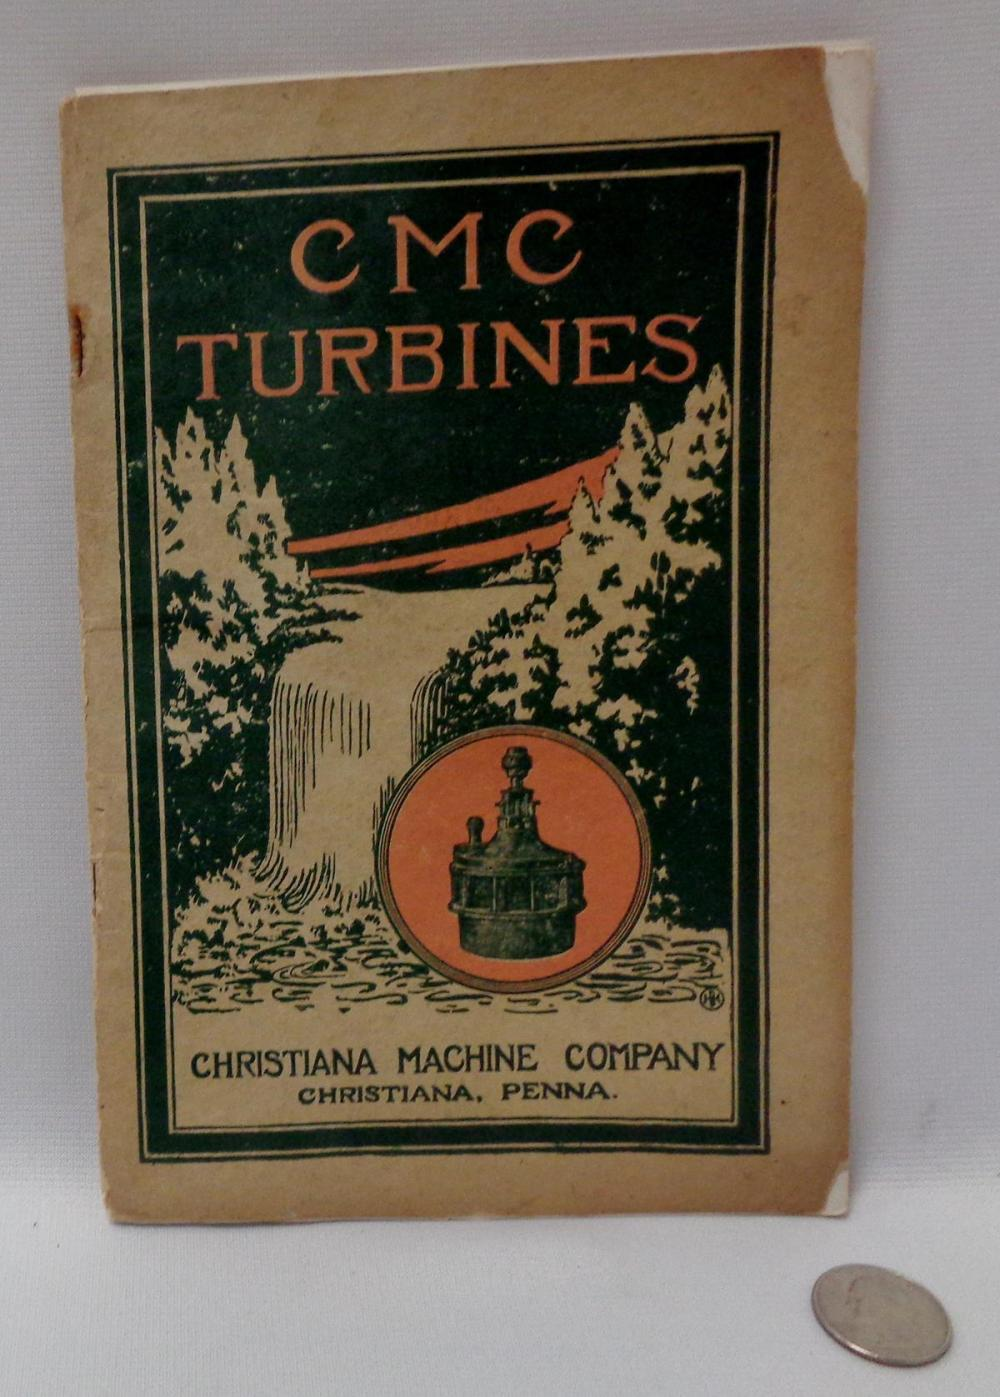 Vintage 1920's Christina Machine Company Turbines Catalog